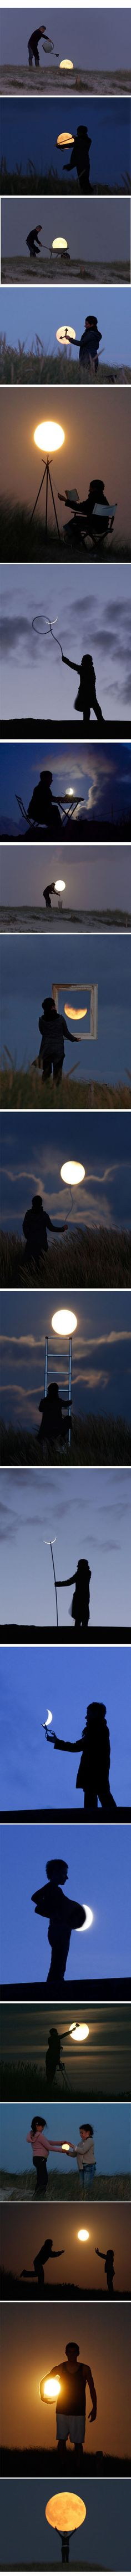 Photos manipulating the moon ... would be fun with the kids on a camping night